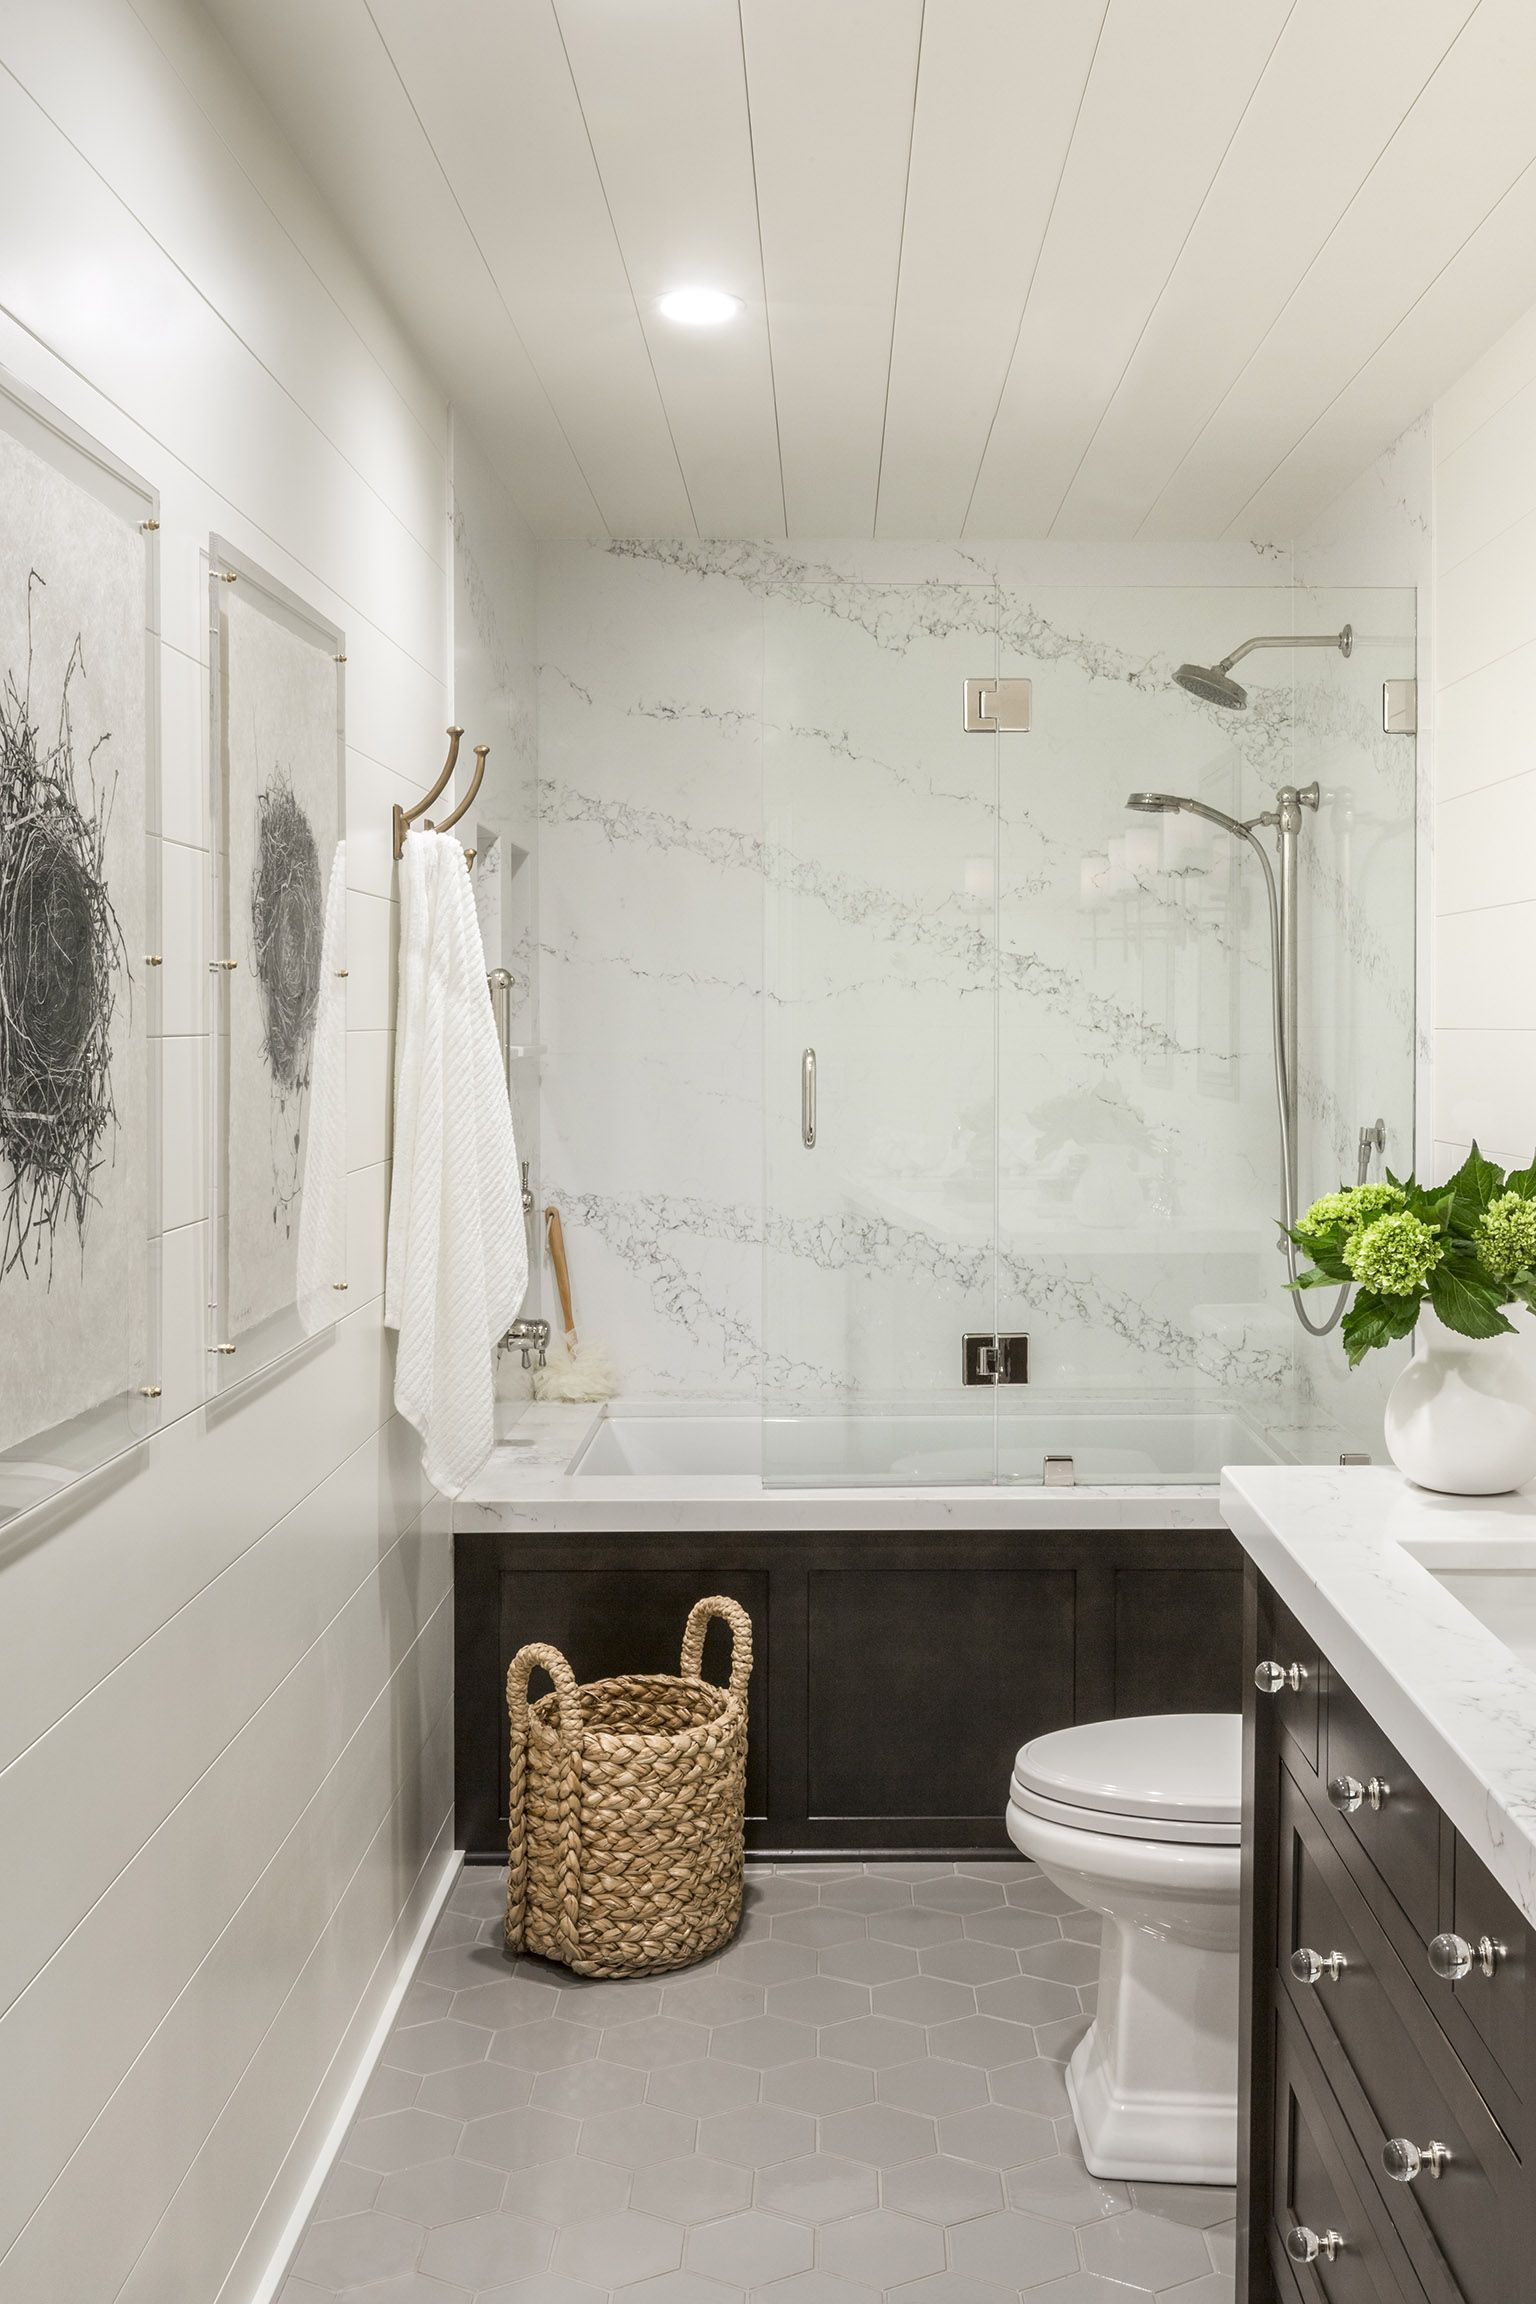 9 Secret Advice To Make An Outstanding Home Bathroom Remodel ...